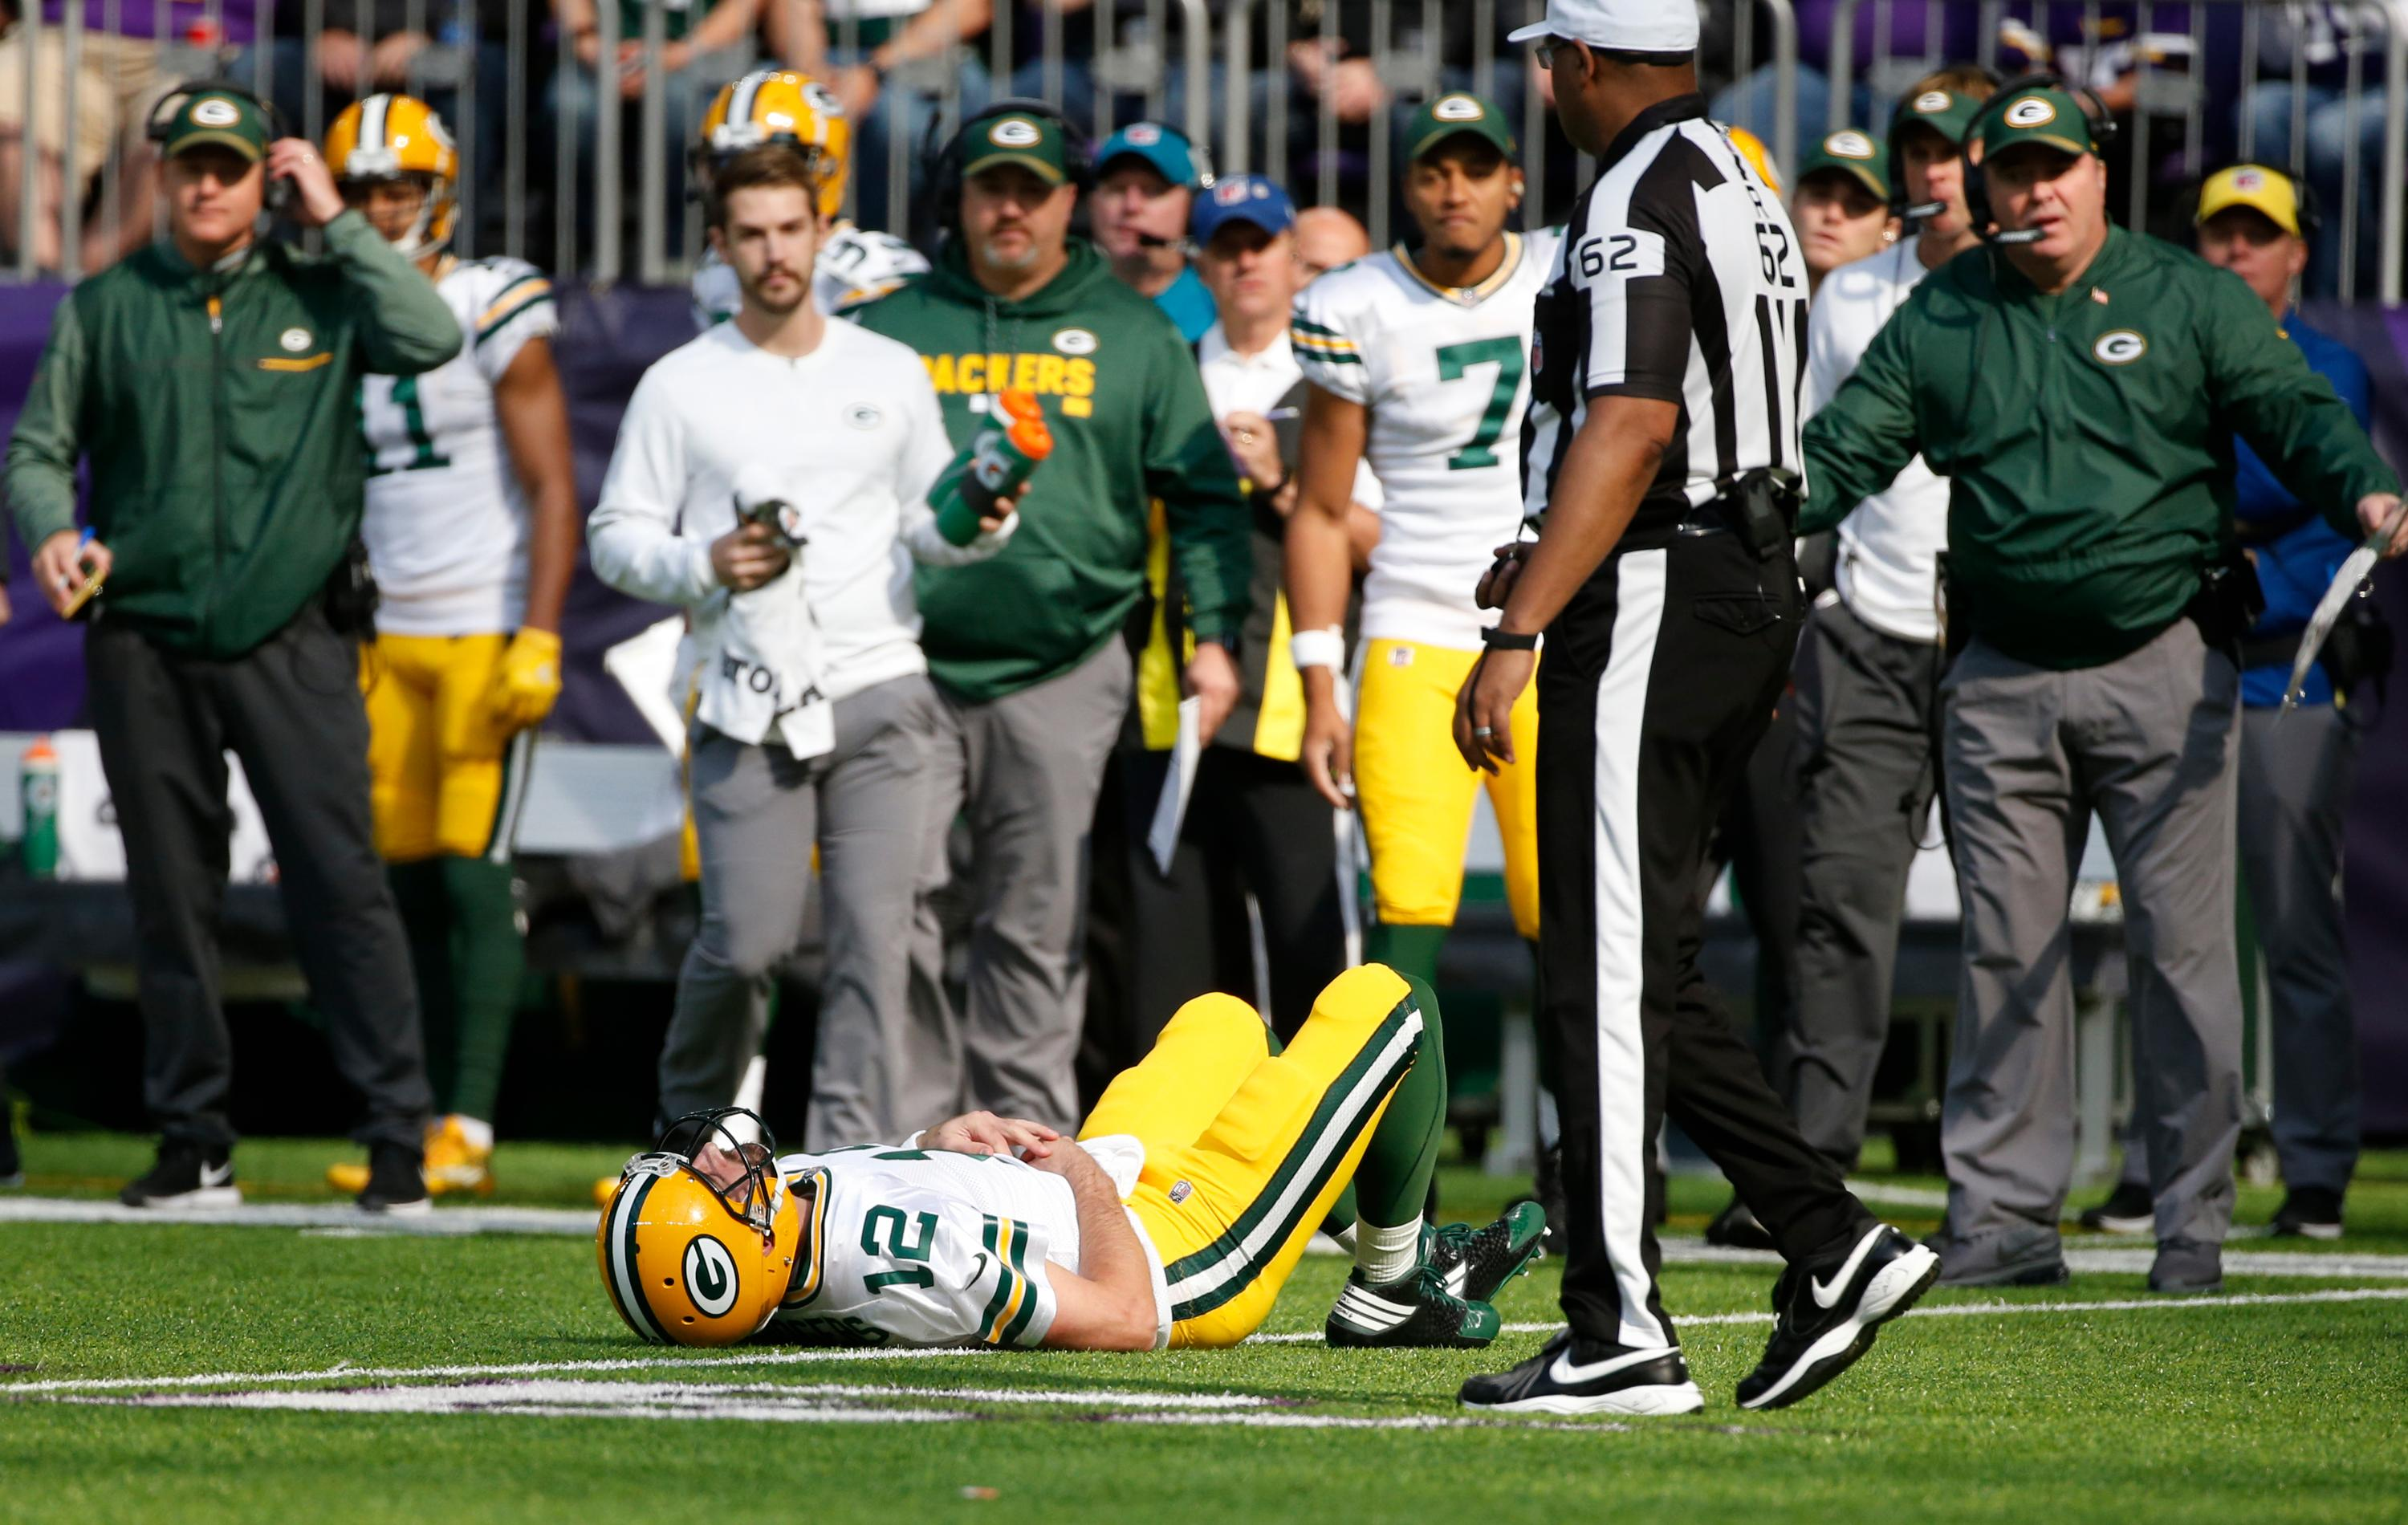 Green Bay Packers quarterback Aaron Rodgers (12) lies on the ground after being hit by Minnesota Vikings outside linebacker Anthony Barr (55) in the first half of a game in Minneapolis, Sunday, Oct. 15, 2017. (AP Photo/Bruce Kluckhohn)